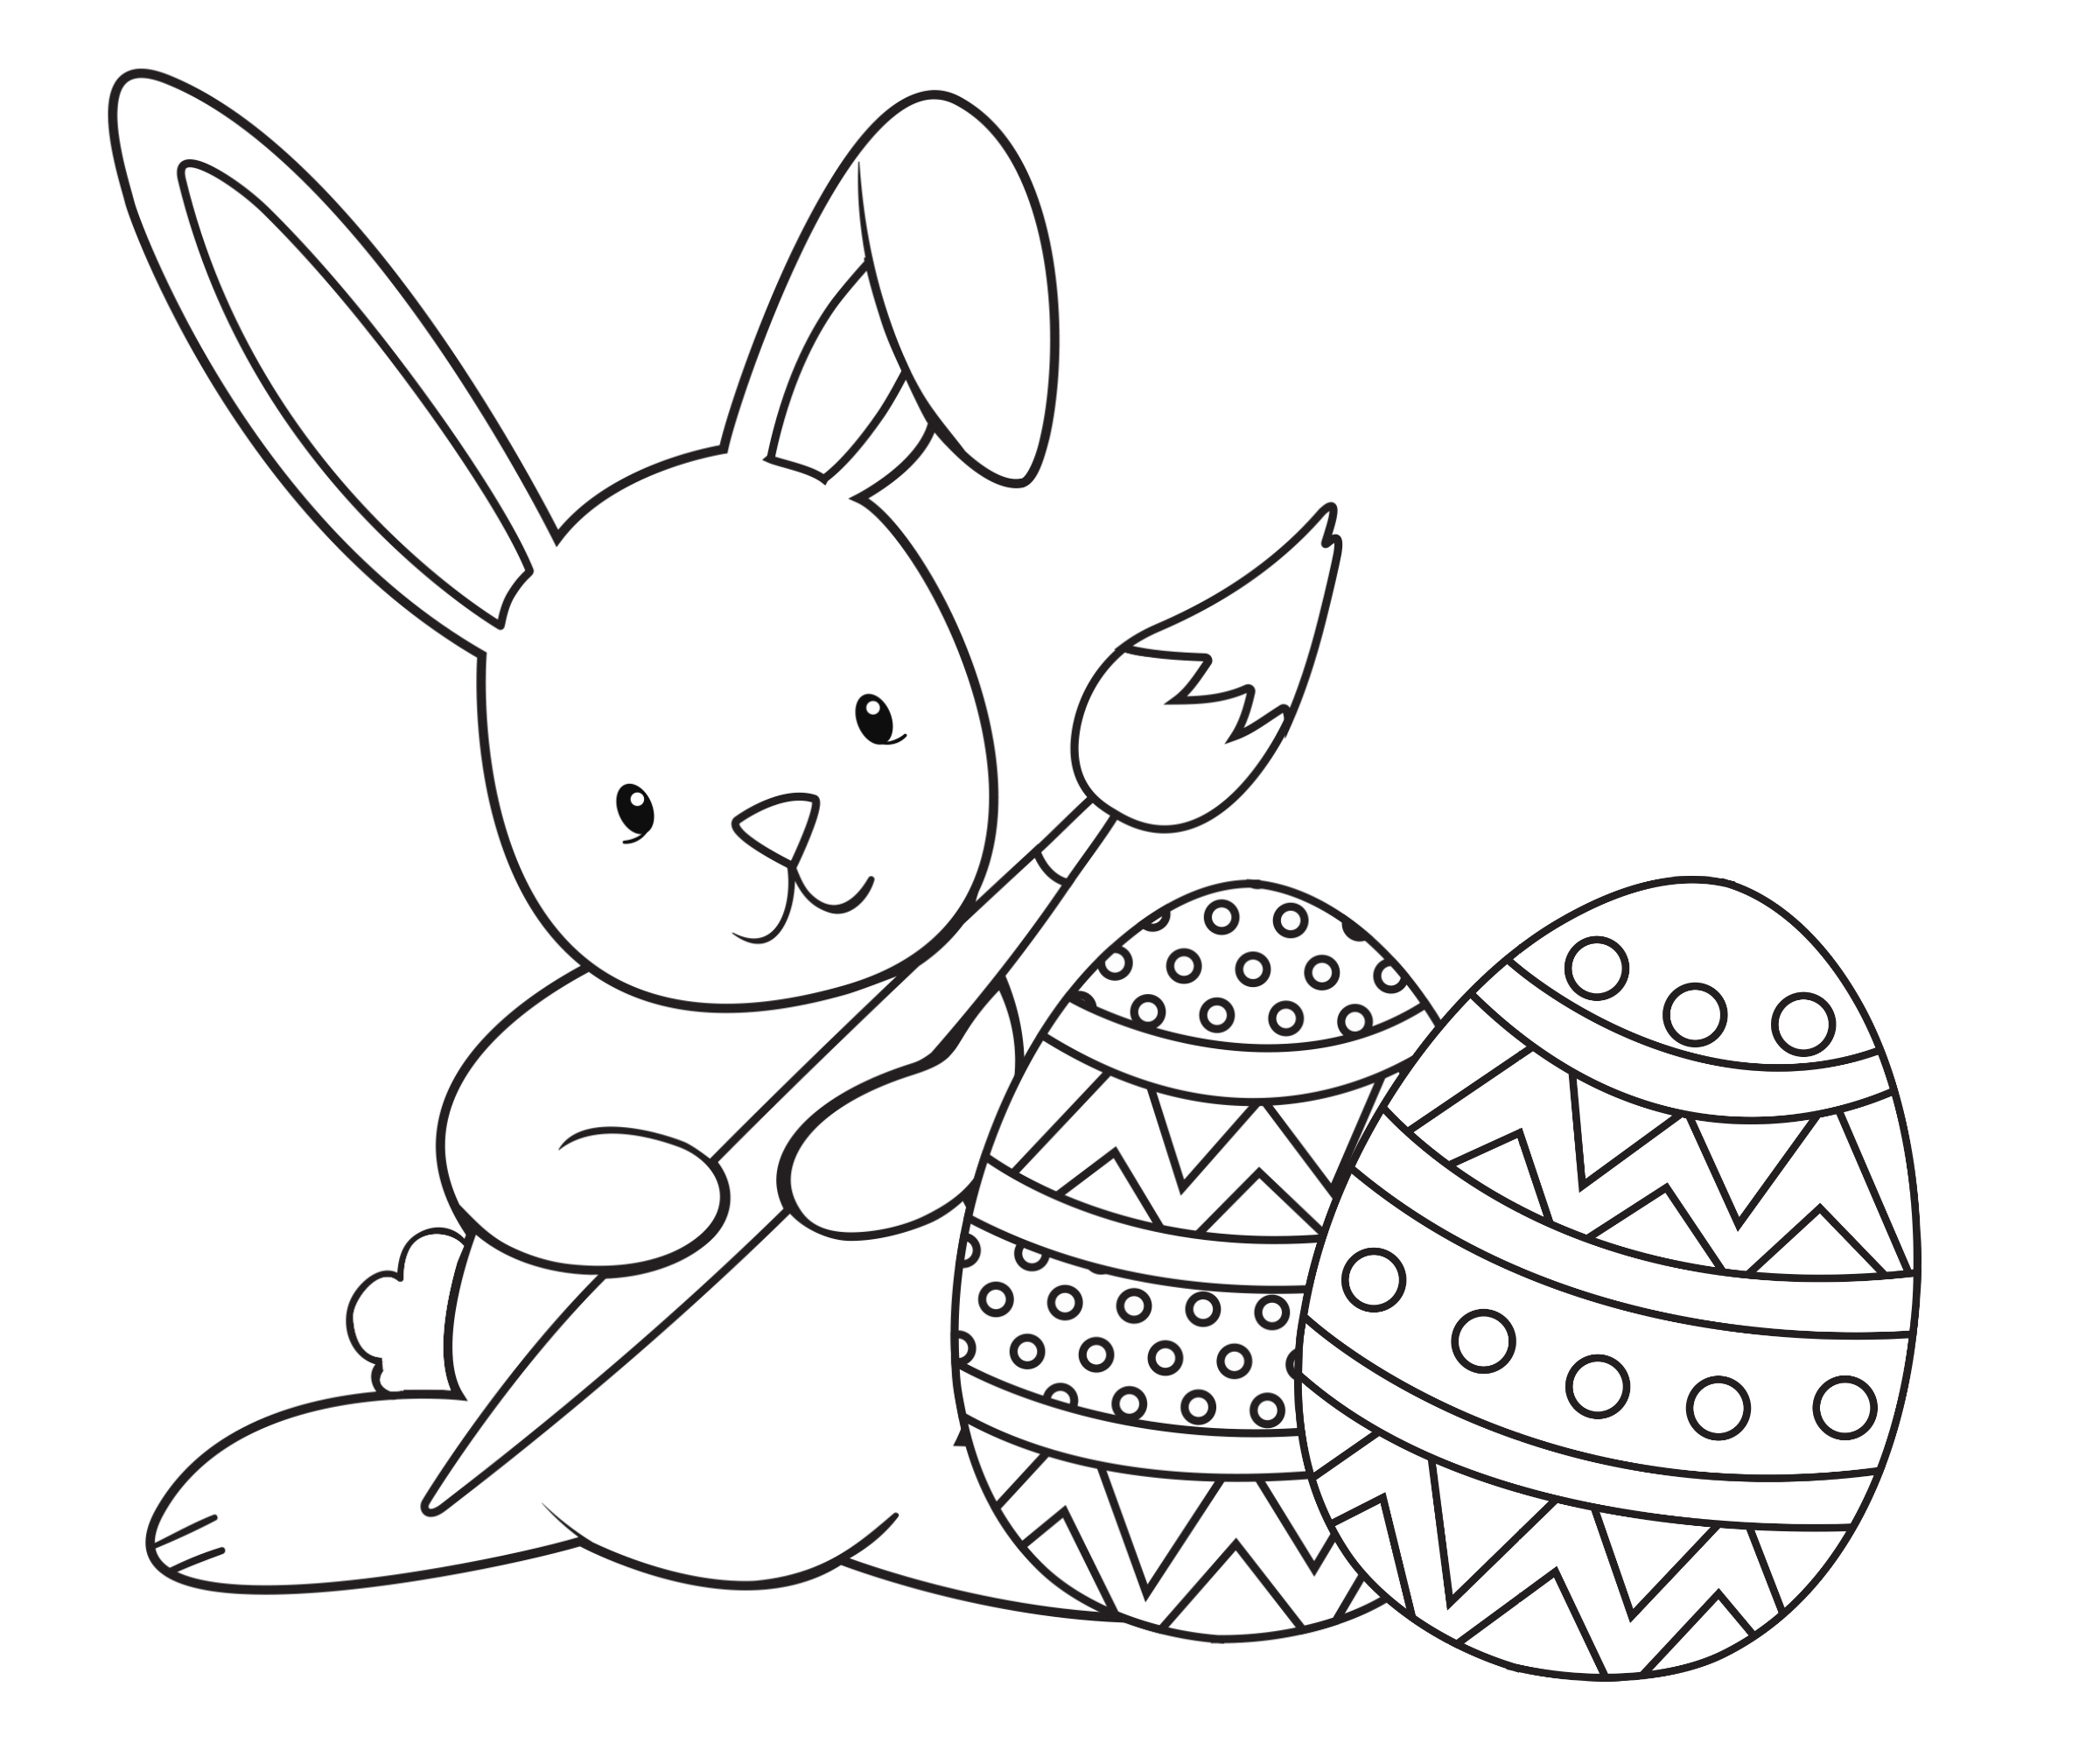 Easter Coloring Pages for Kids - Crazy Little Projects | free printable easter coloring pages for toddlers